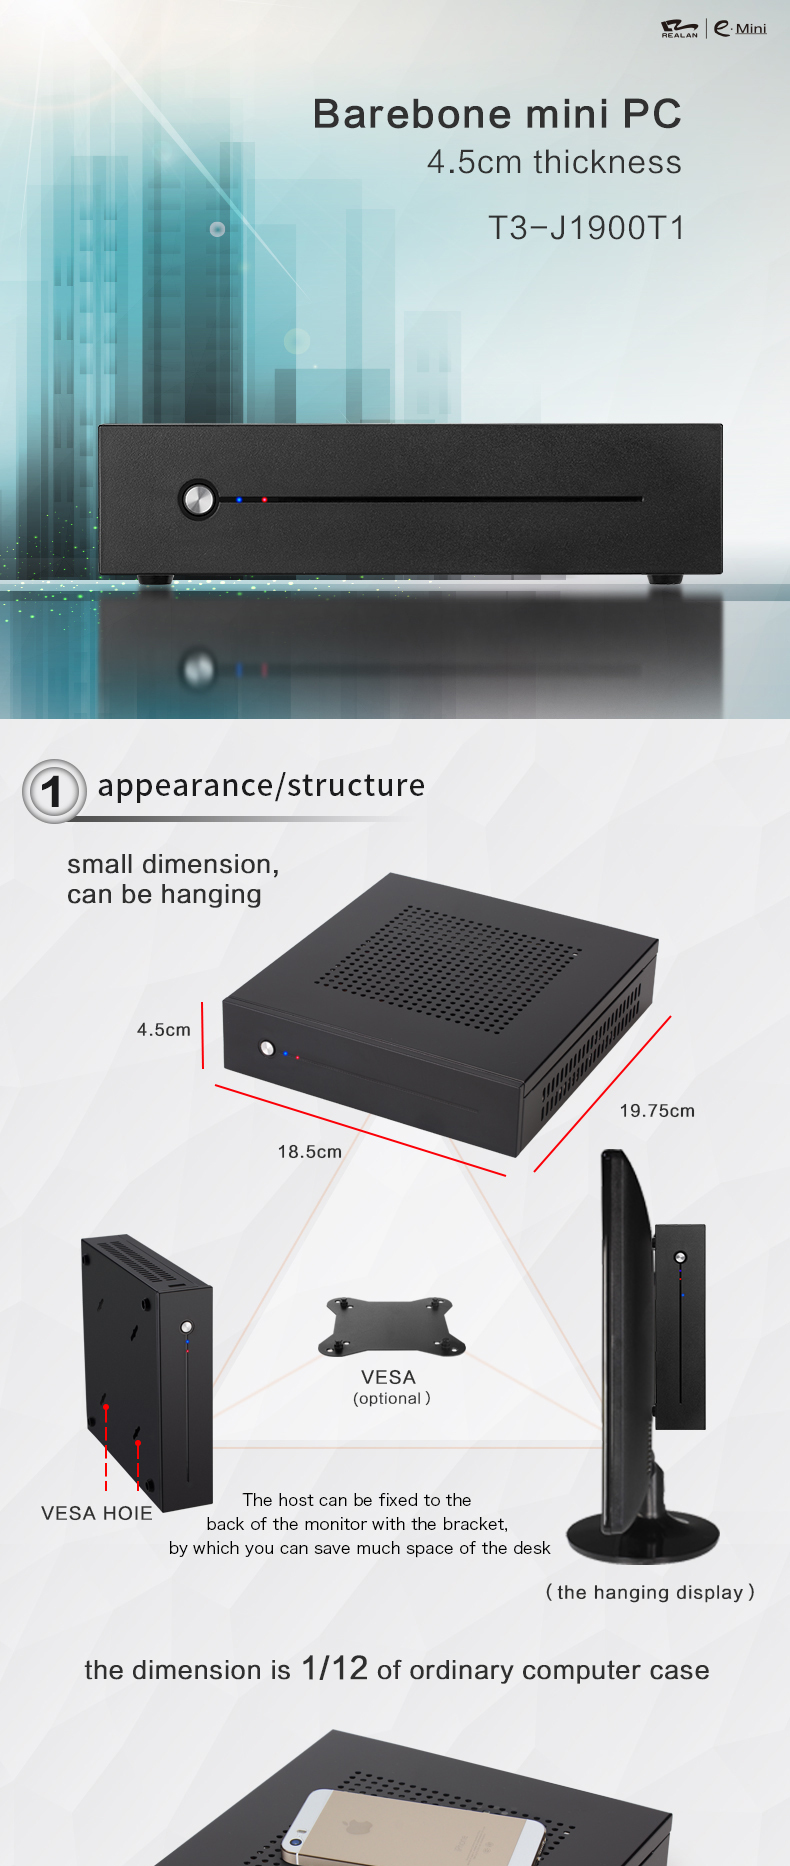 Fanless Abuntu mini industrial pc x86 with mini pc with vga wifi and hdmi